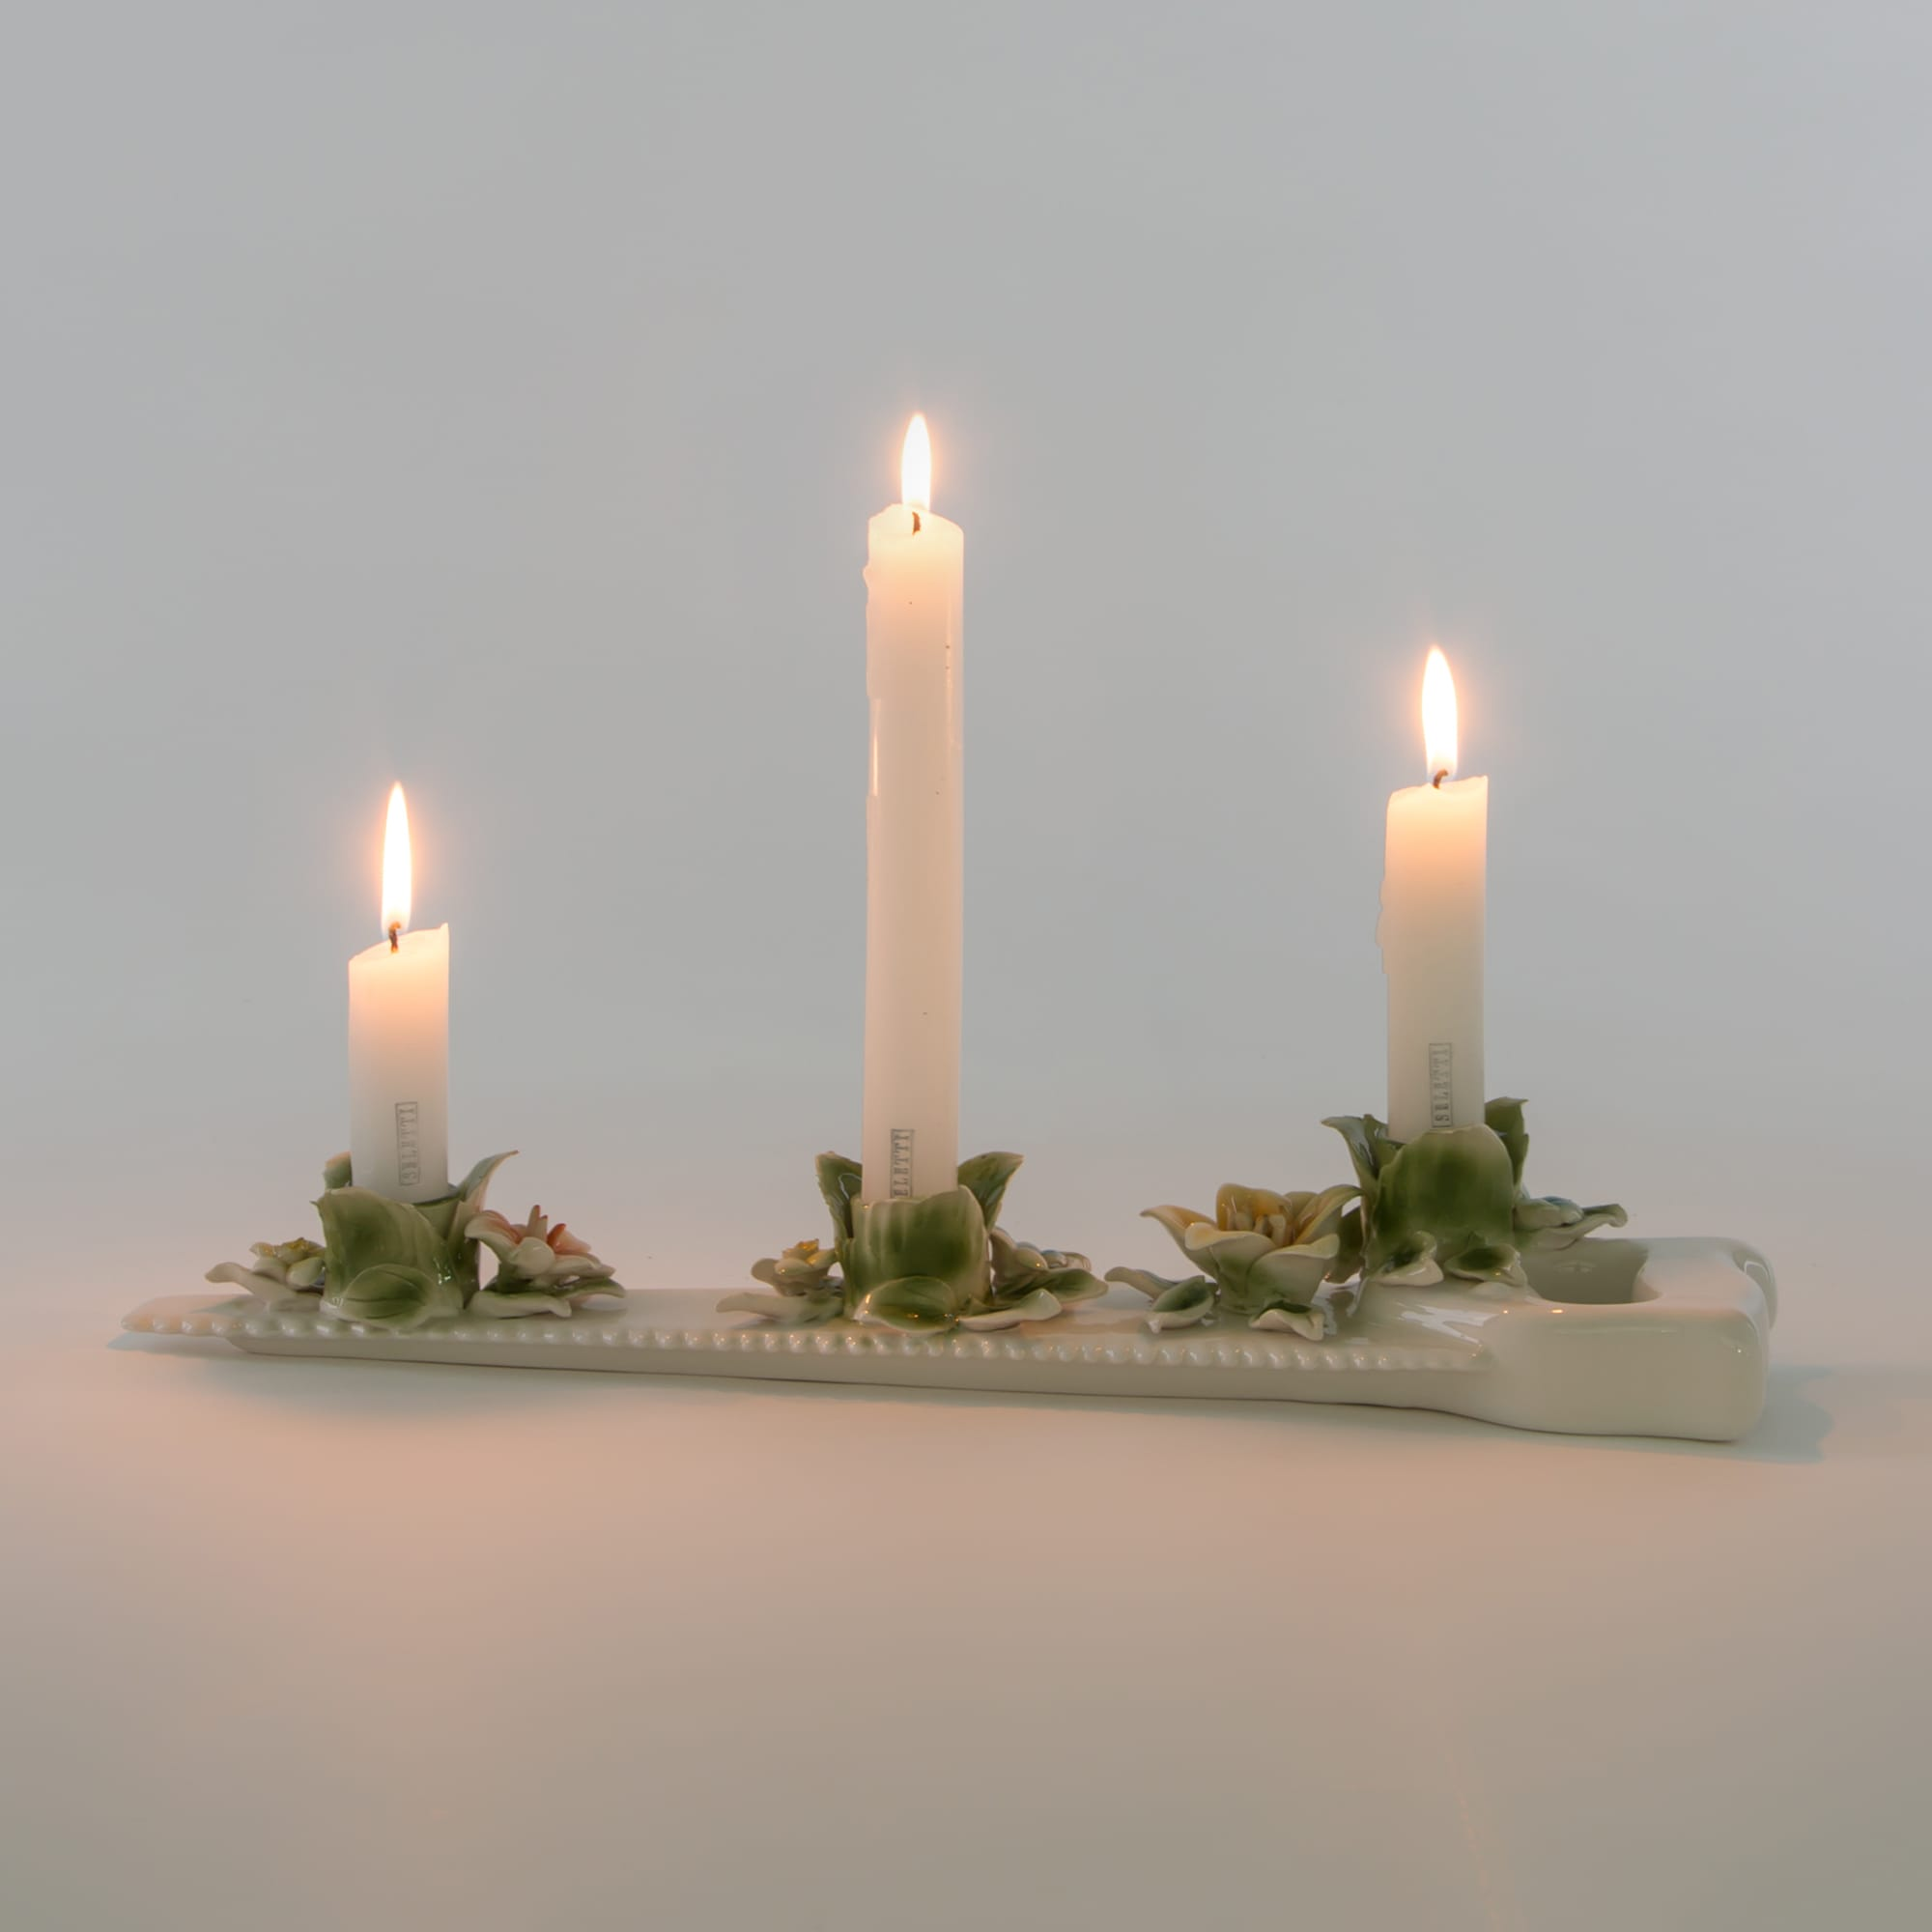 Candle Holder Seletti The Saw Interior